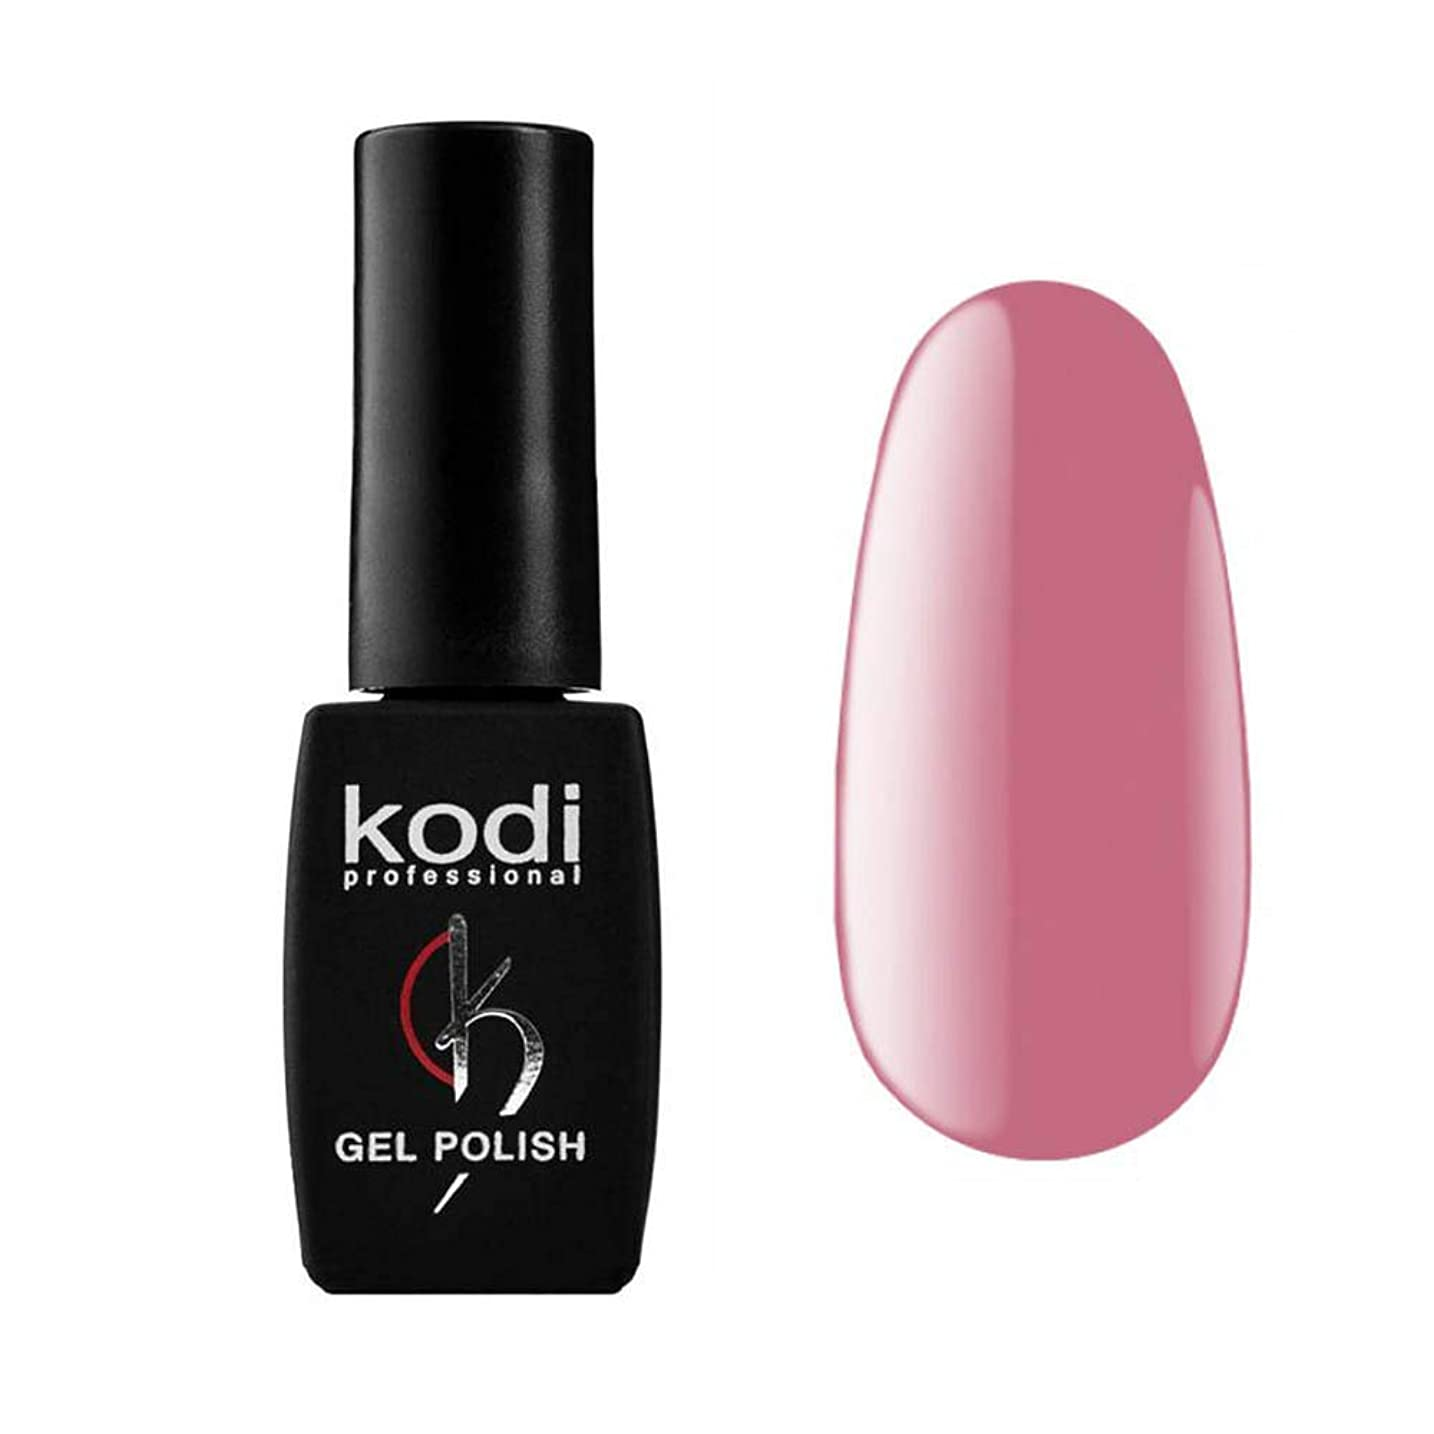 プレフィックスギャップ幻想Kodi Professional New Collection P PINK #30 Color Gel Nail Polish 12ml 0.42 Fl Oz LED UV Genuine Soak Off